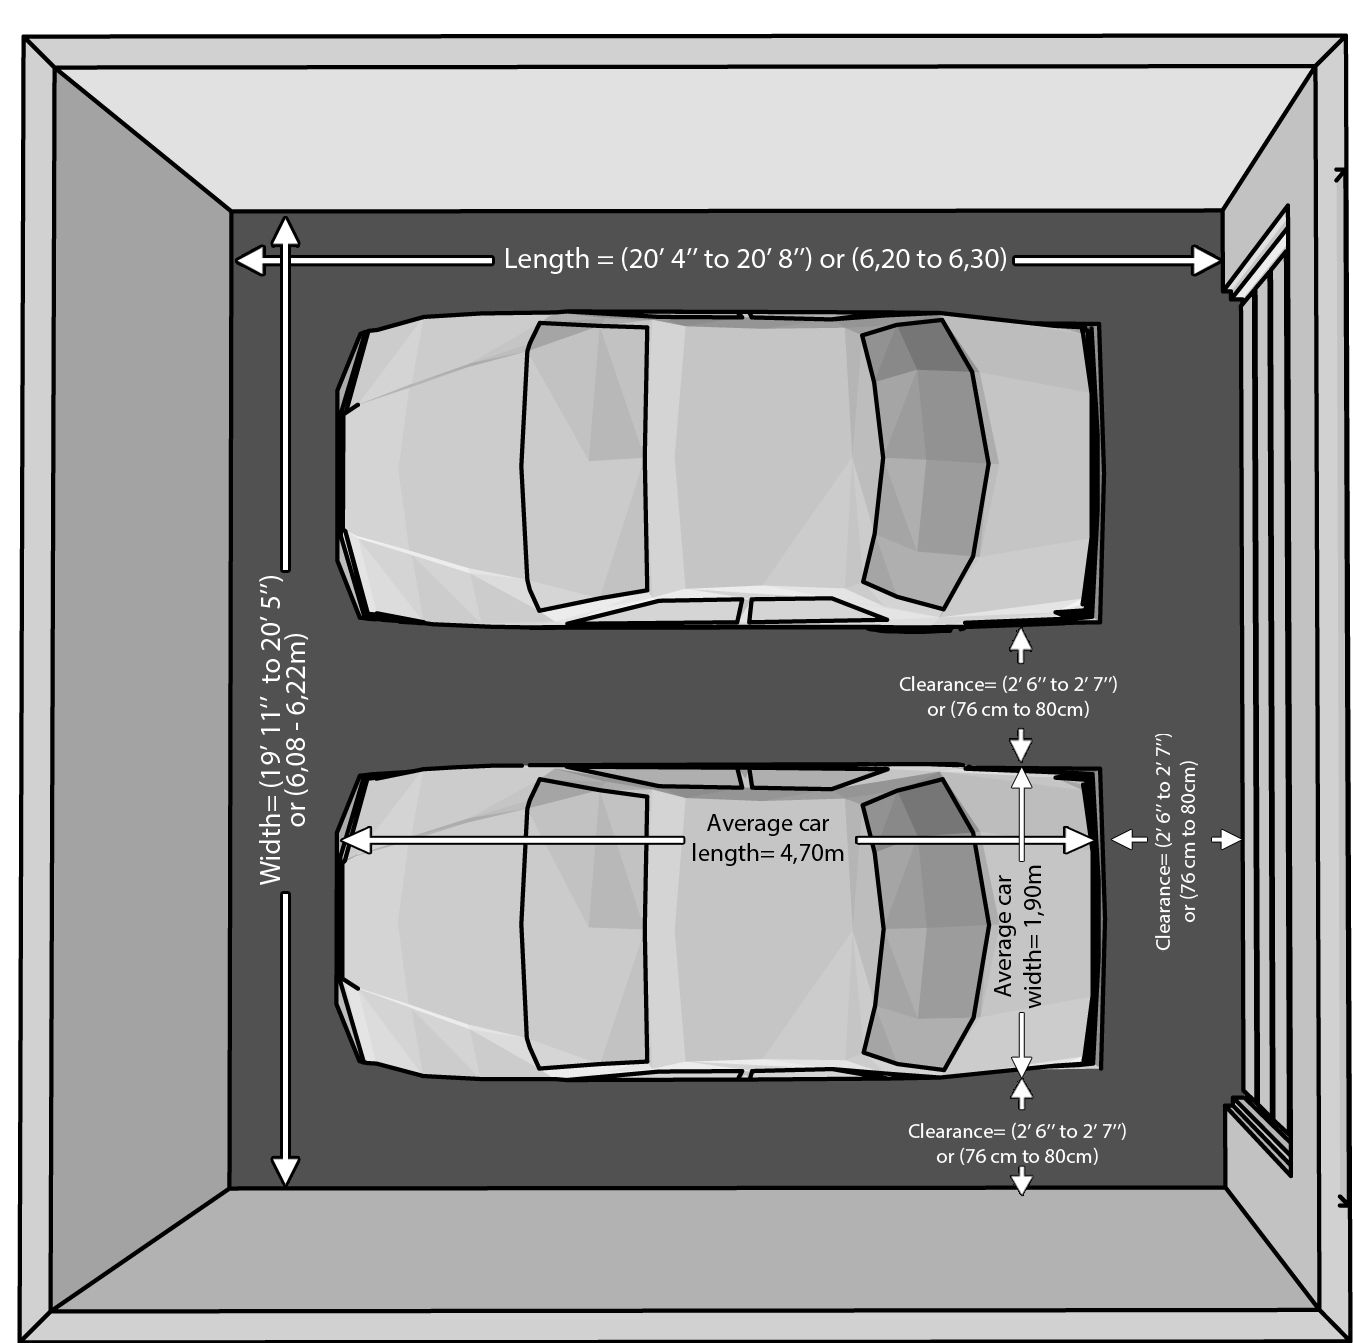 Standard garage door sizes for ergonomic car storage for Standard garage door size